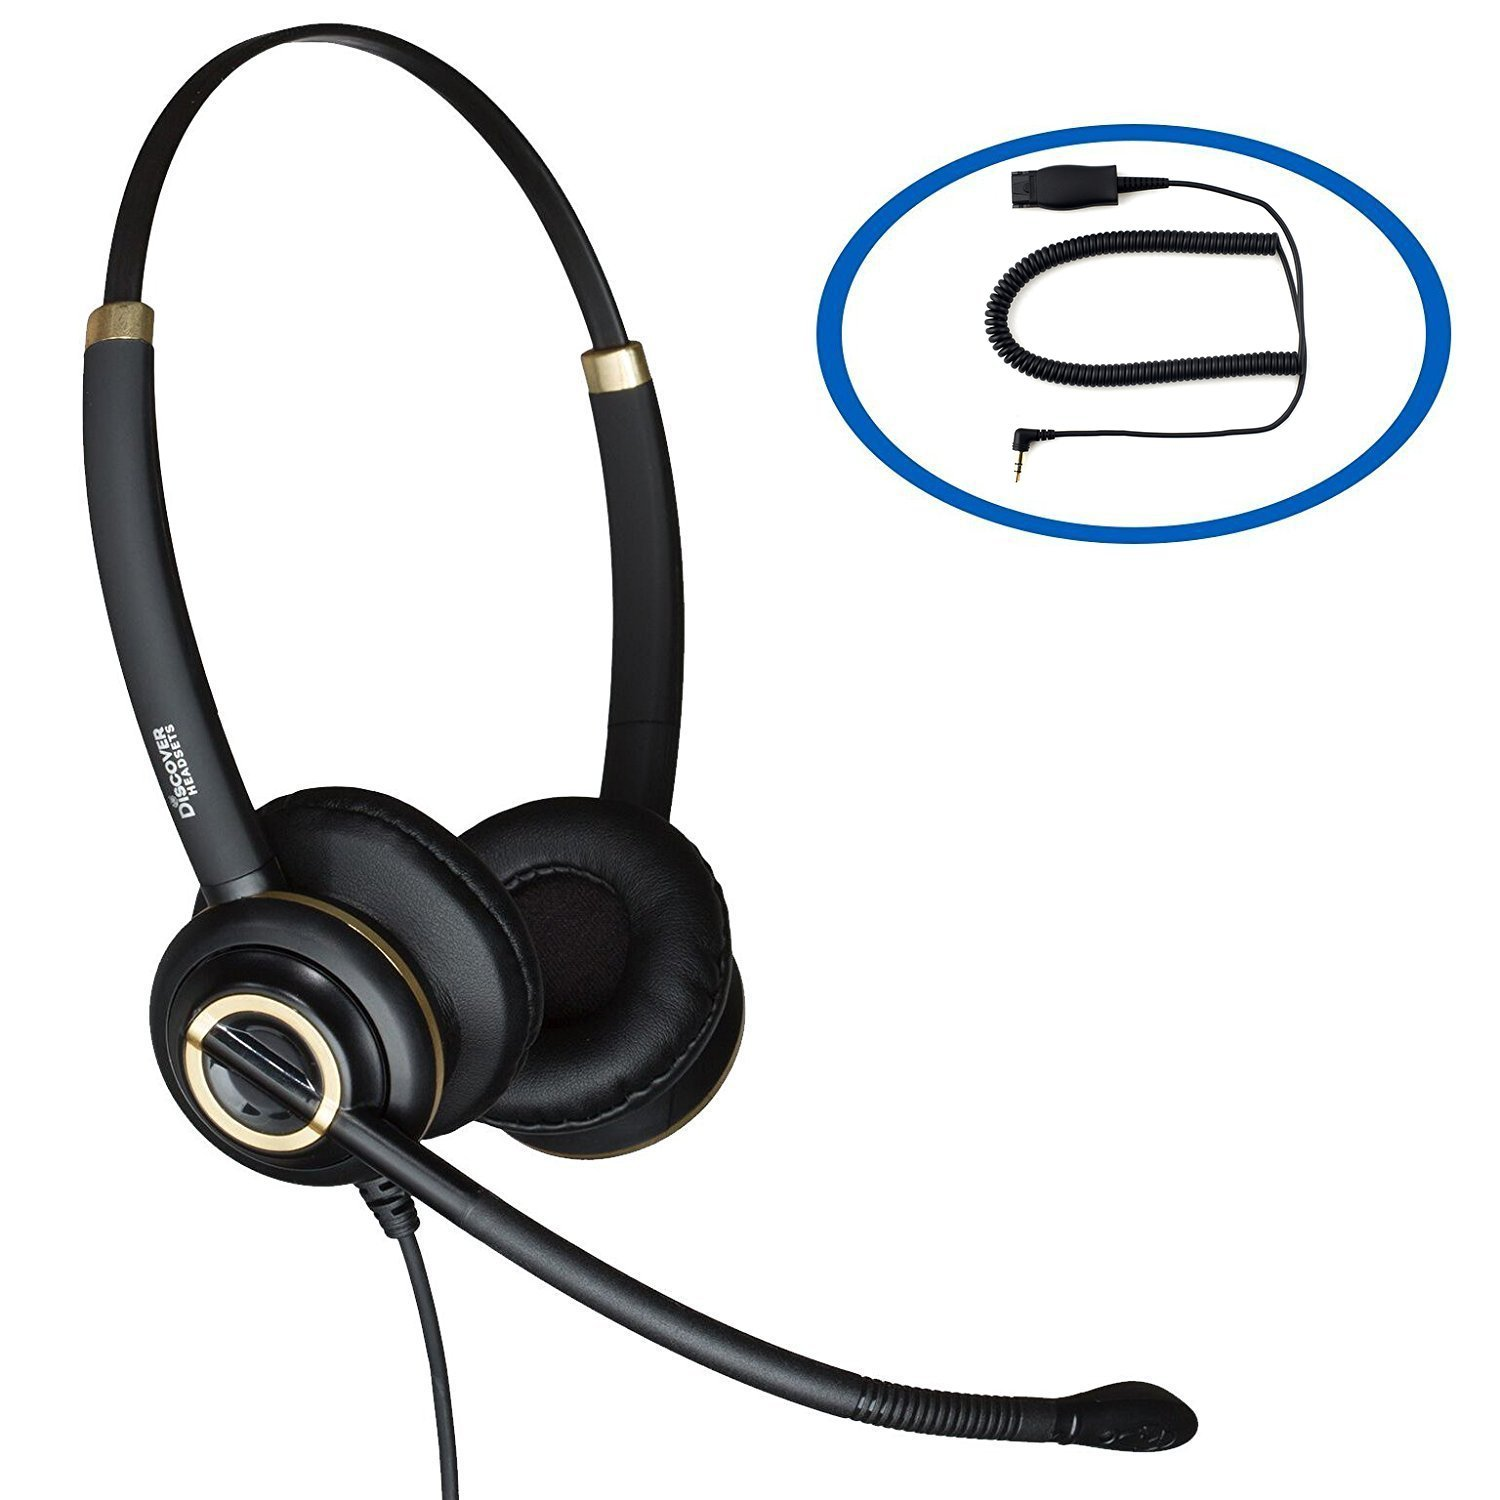 Discover D712 Binaural Headset With 2.5mm Connection For Polycom IP320, IP330, IP321, IP331 and Soundpoint Pro, Cisco SPA 303, 501G, 502G, 504G, 508G, 509G, 525G 512G, 514G and 525G2 Telephones